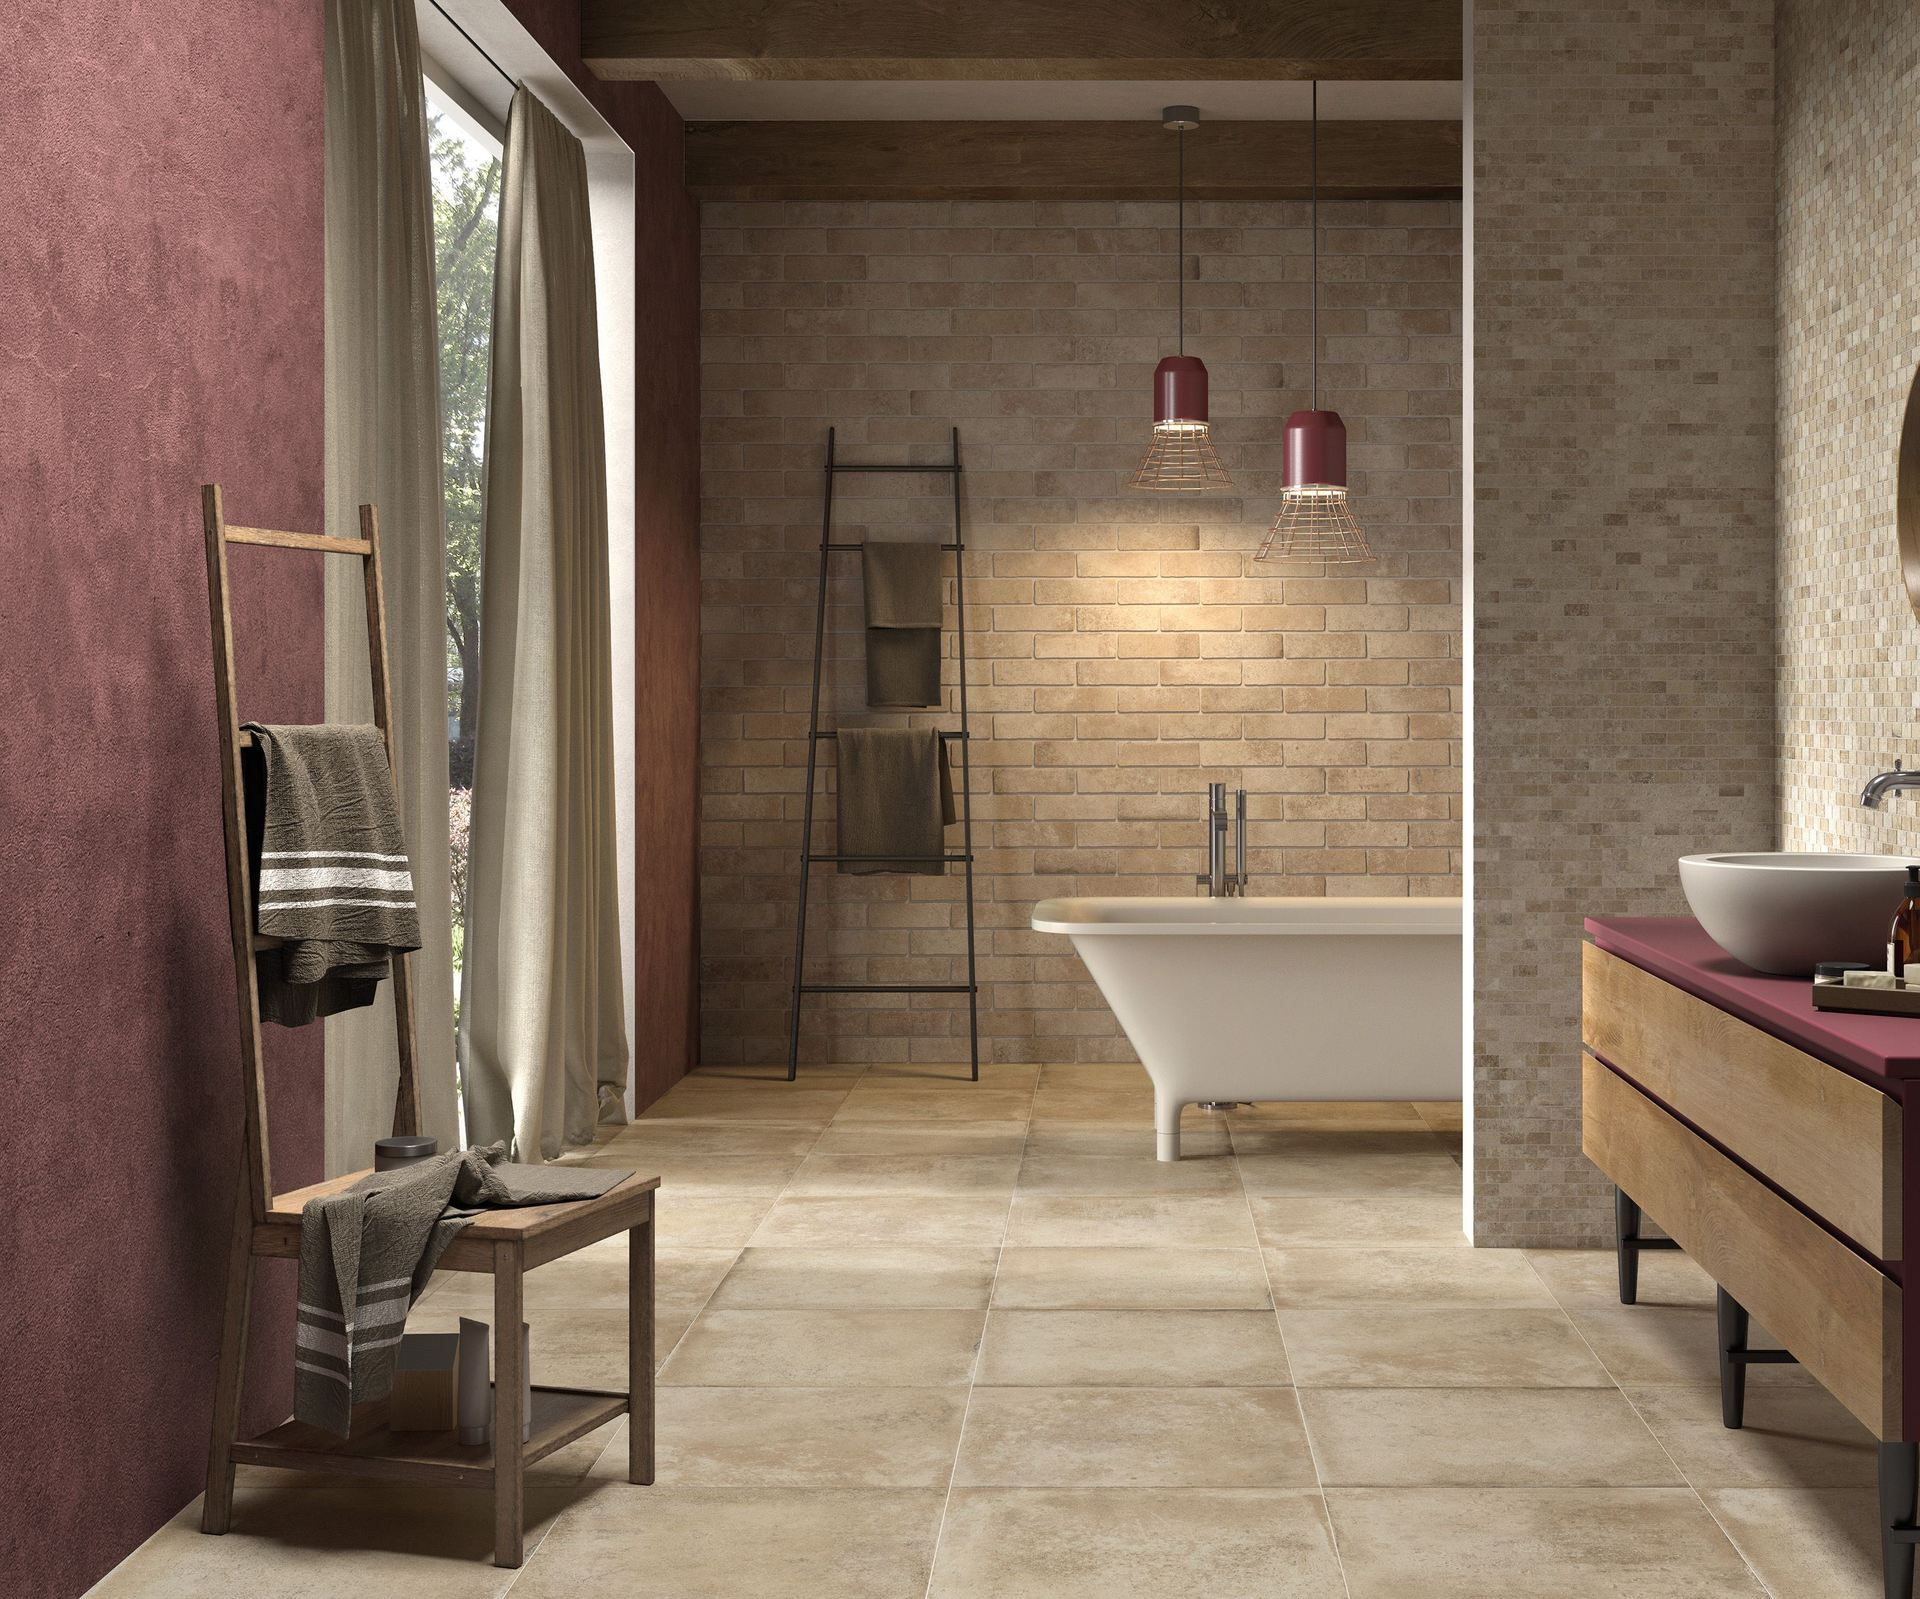 Ricchetti Cotto Med 1 Bathroom Public Spaces Living Room Outdoors Terracotta Effect Effect Brick Effect E Brick Bathroom Porcelain Tile Bathroom Bathroom